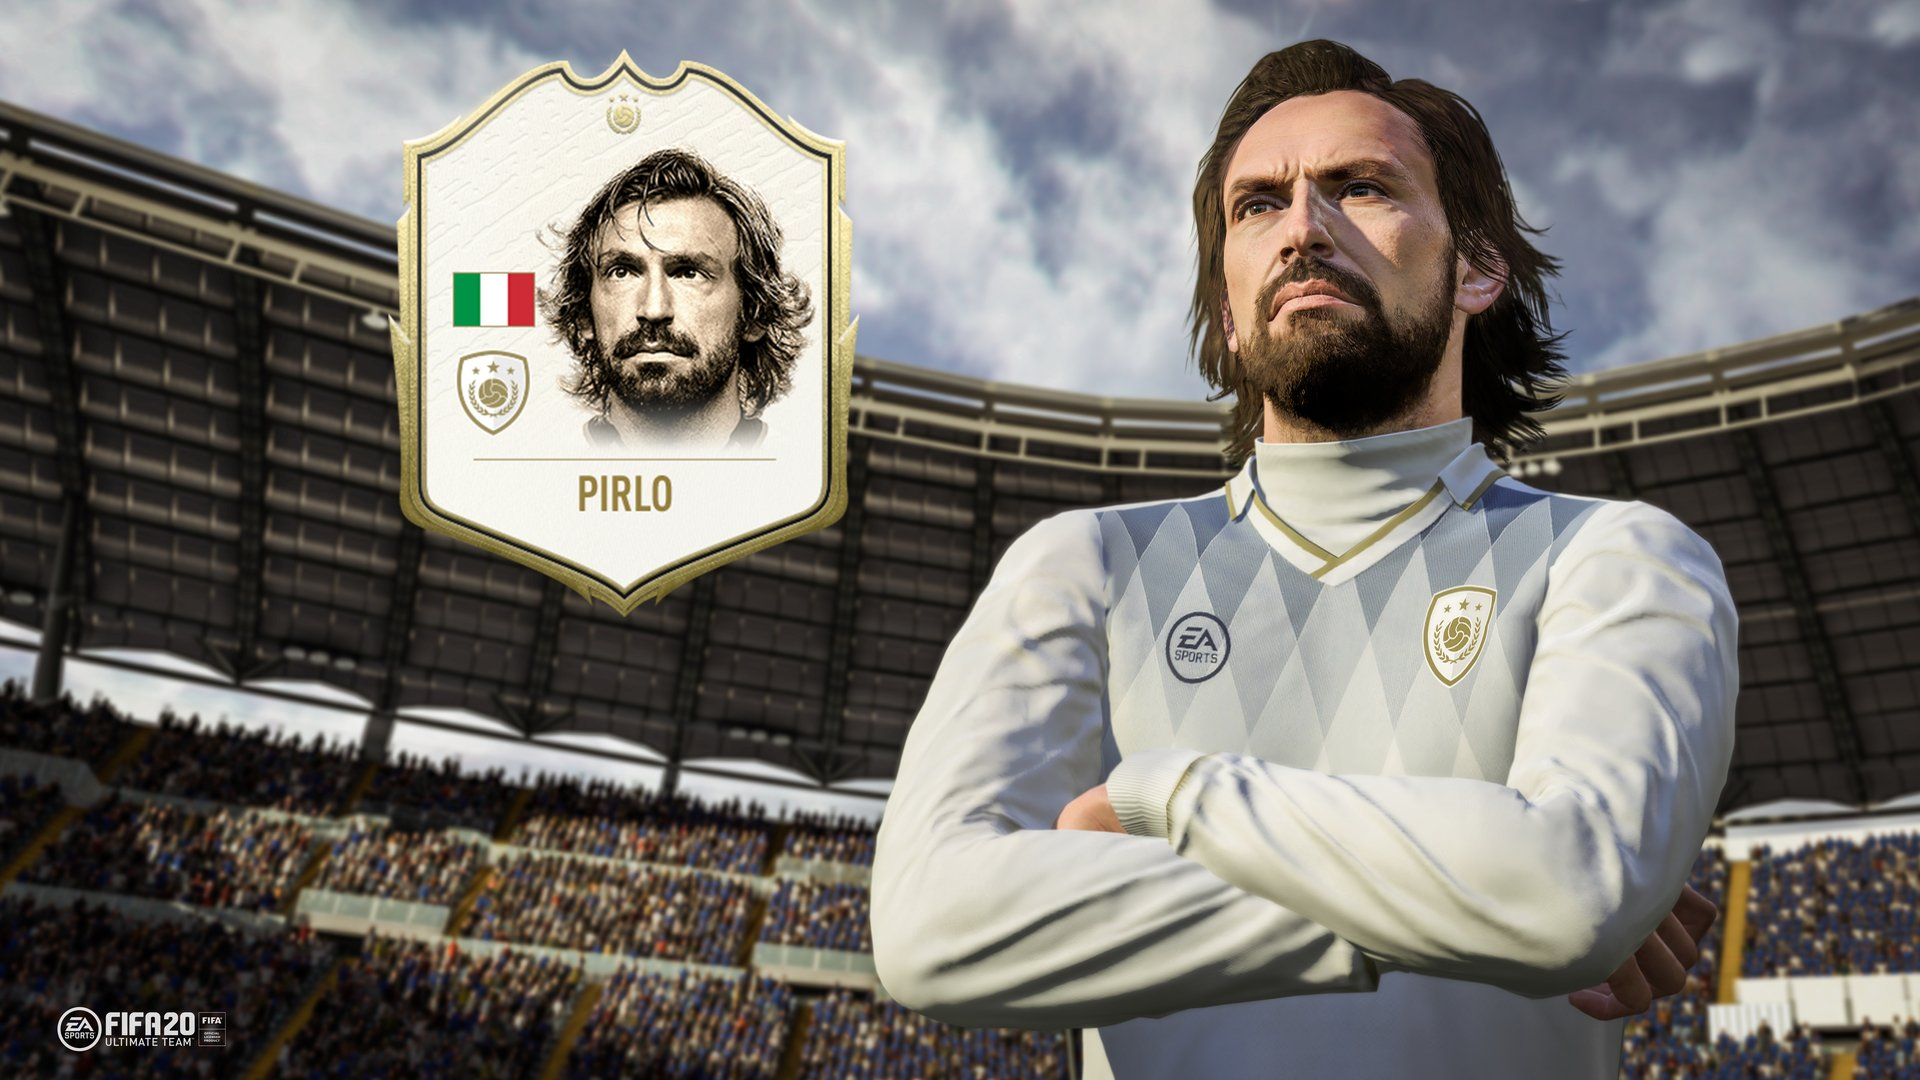 FIFA 20 New Icons list - Zidane, Wright, Koeman, Drogba, Pirlo